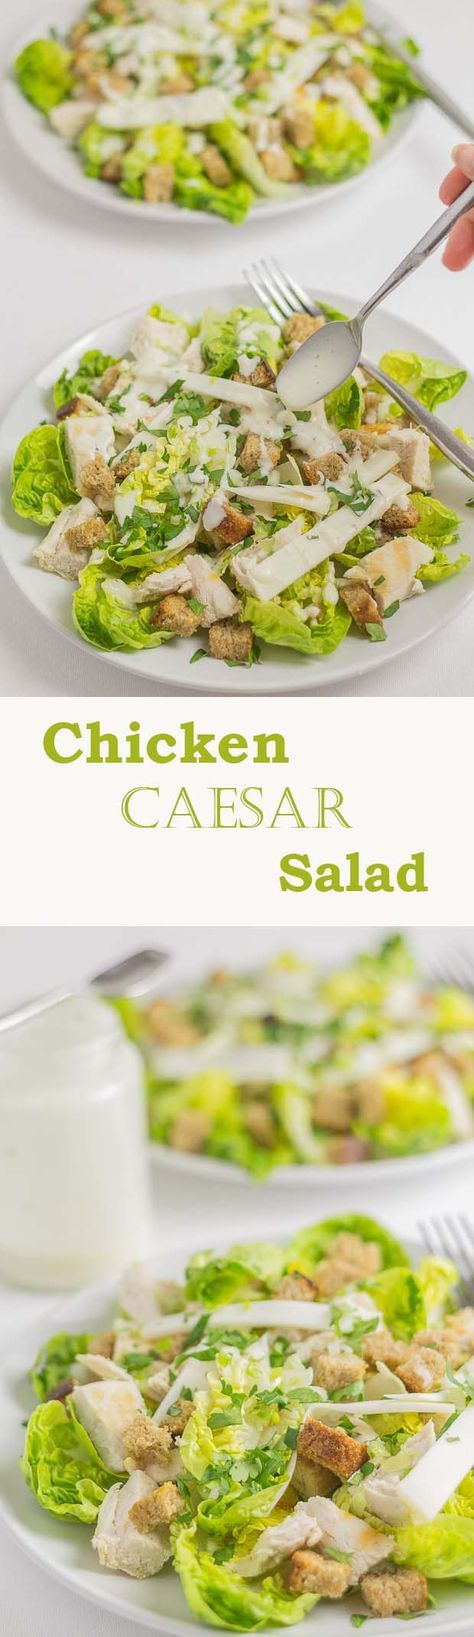 Classic chicken Caesar salad recipe with crunchy wholemeal croutons and a delicious low calorie creamy dressing.